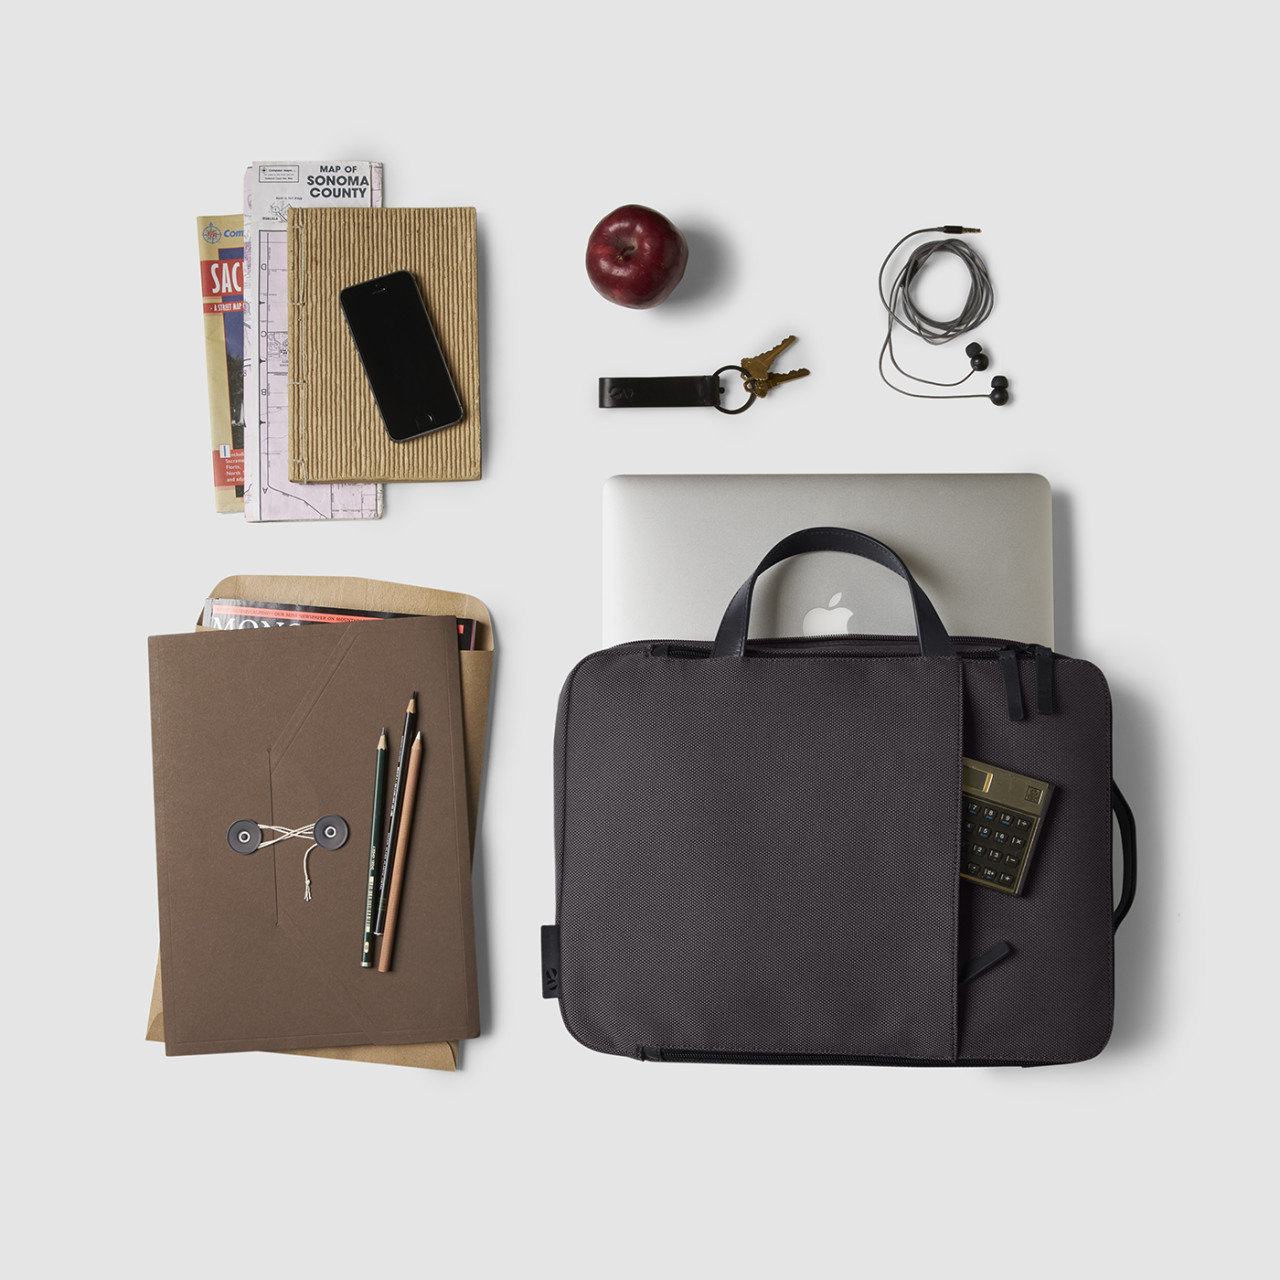 Stylish, Functional Travel Accessories by Octovo